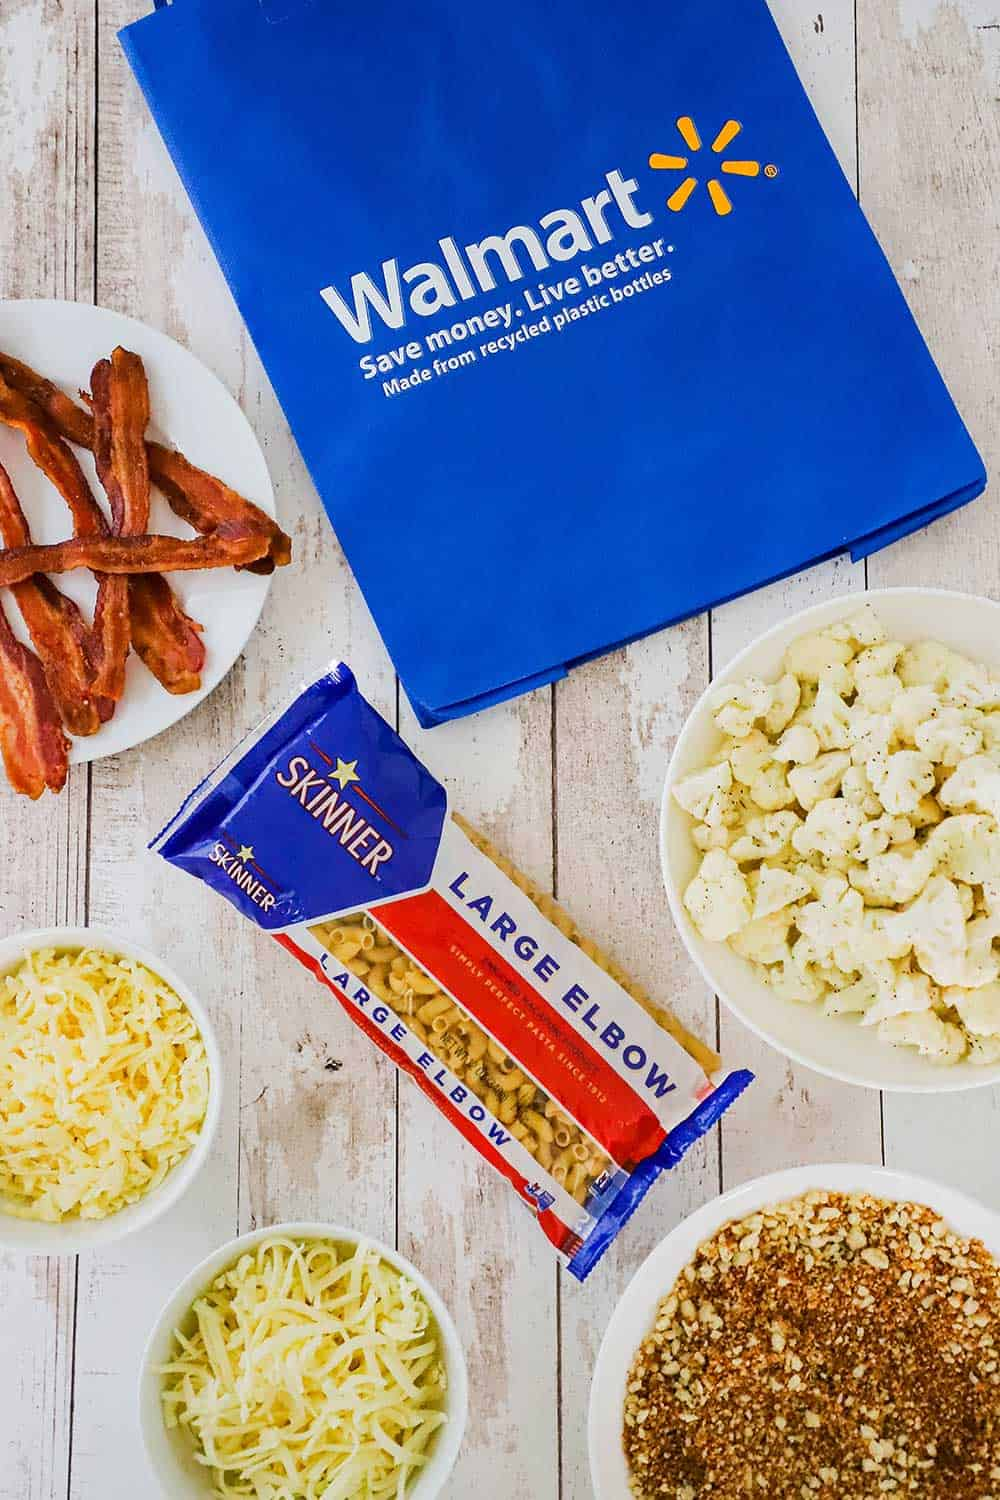 A large blue Walmart bag on its side next to a plate of cooked bacon, a bag of Skinner pasta, and bowls of cheese and bread crumbs.